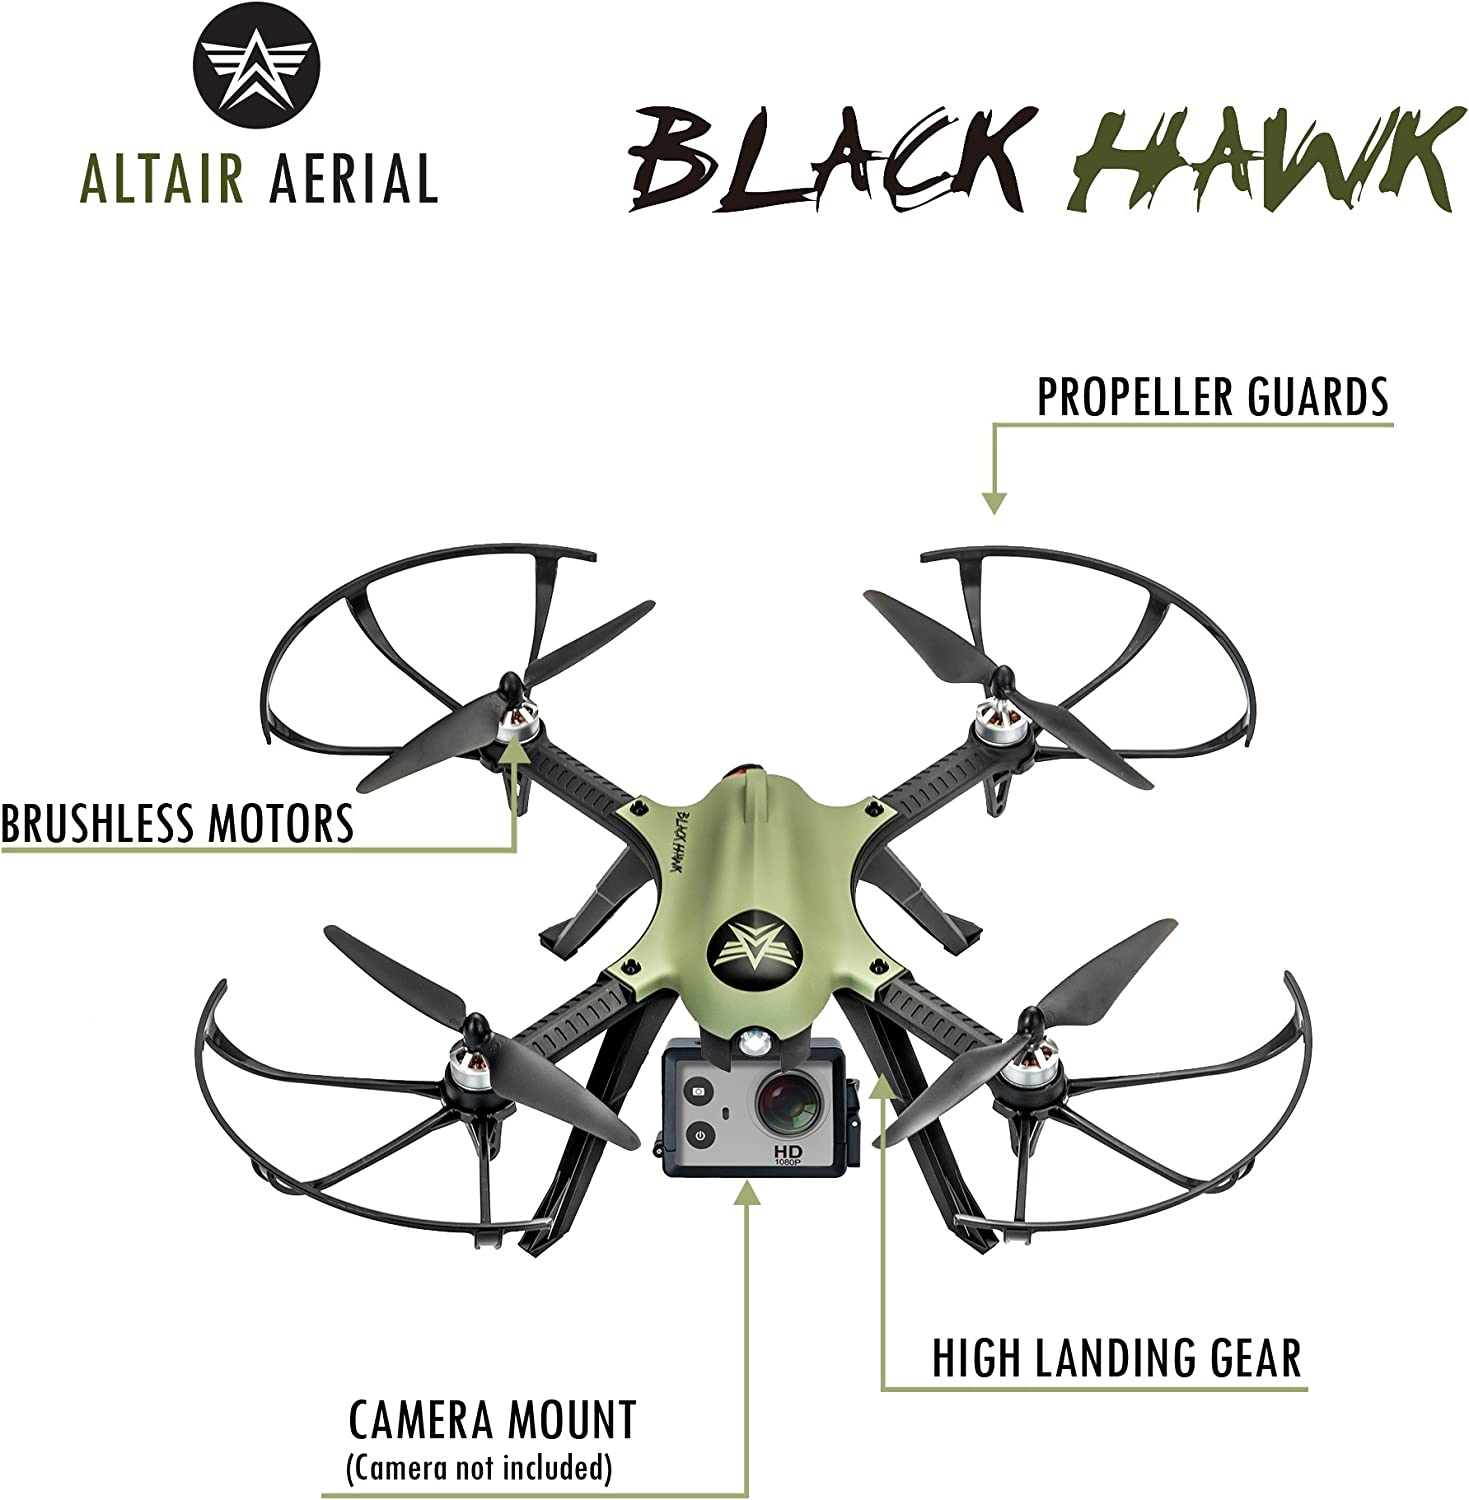 Altair Aerial Blackhawk Review GoPro compatible drone instructions